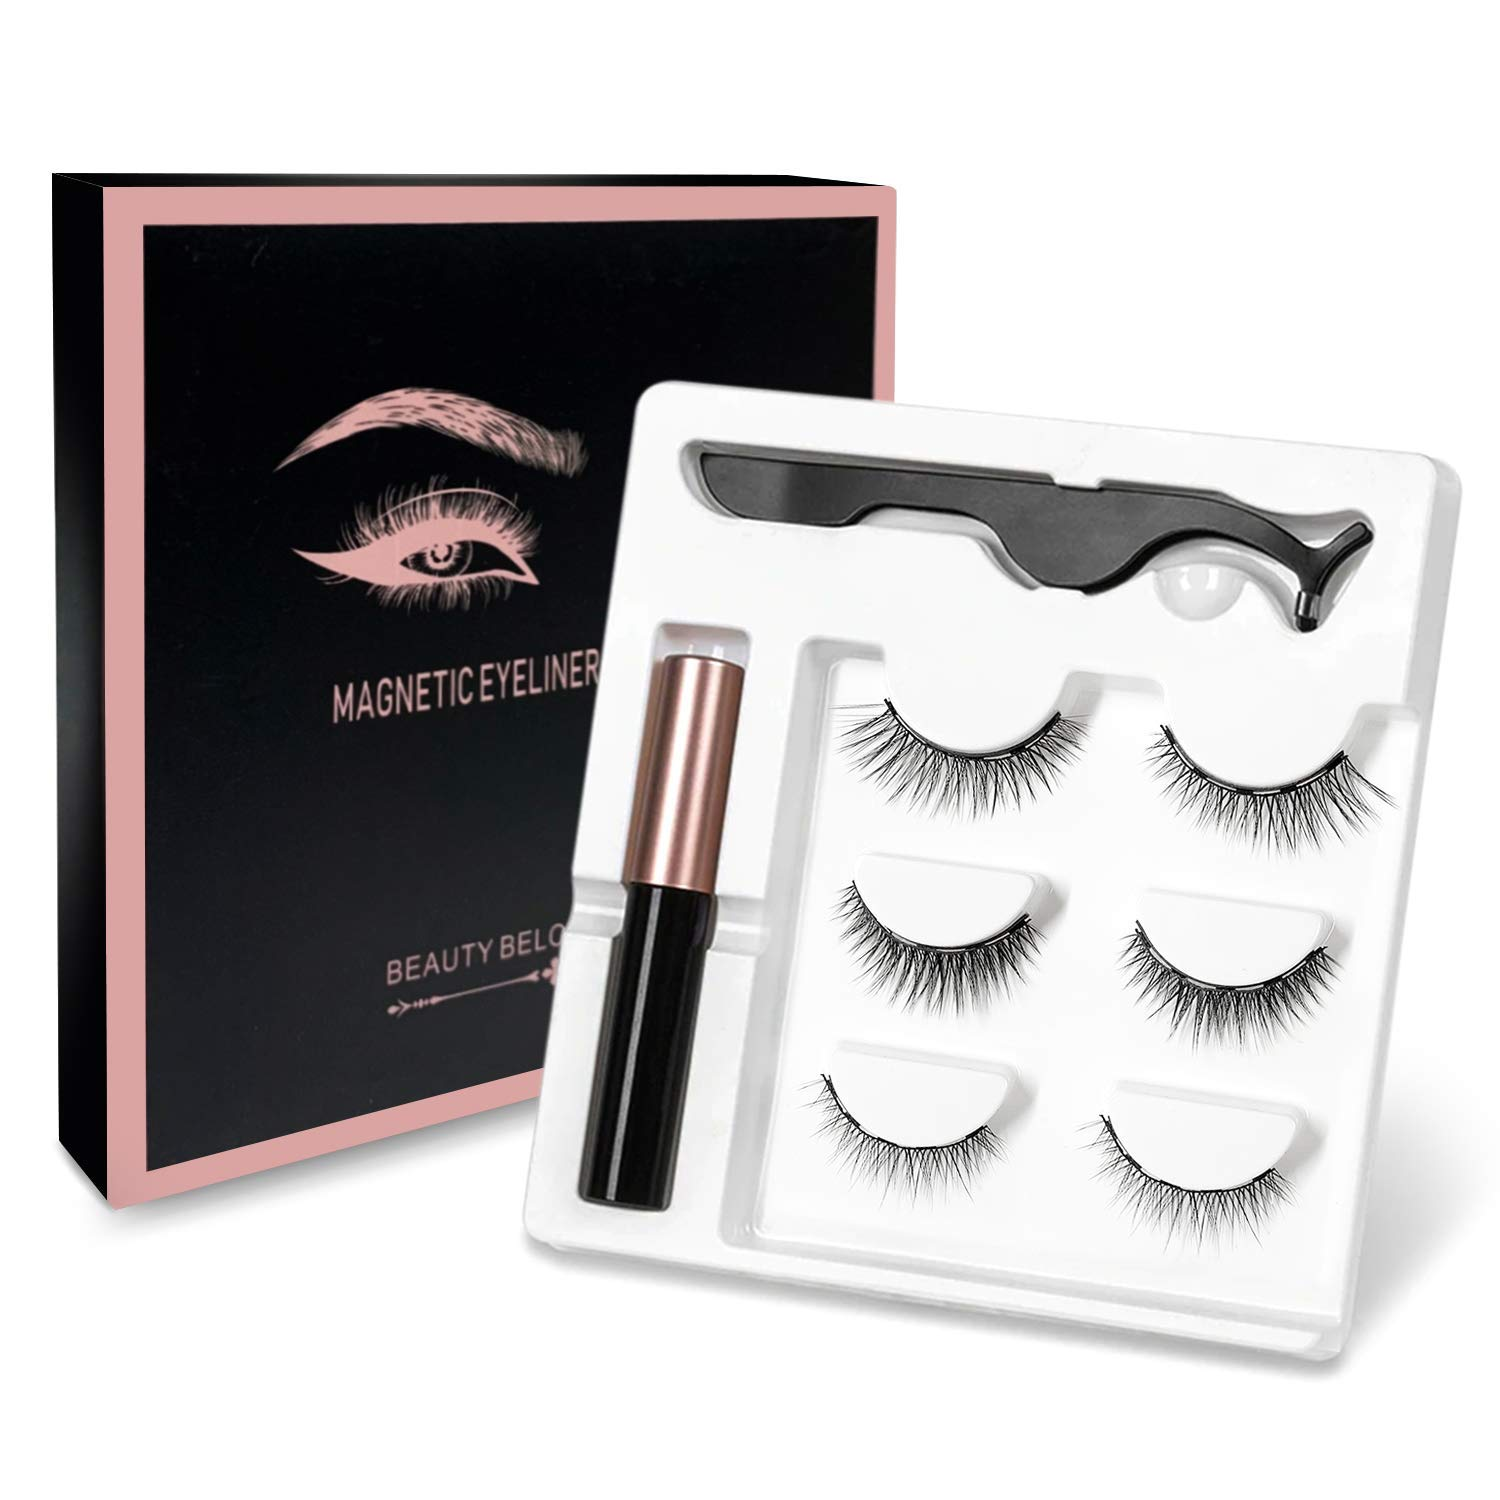 Magnetic Eyelash and Eyeliner Kit - Magnetic Eyeliner for Magnetic Lashes Set, Reusable False Lashes Different Style with Tweezers (Three pairs)